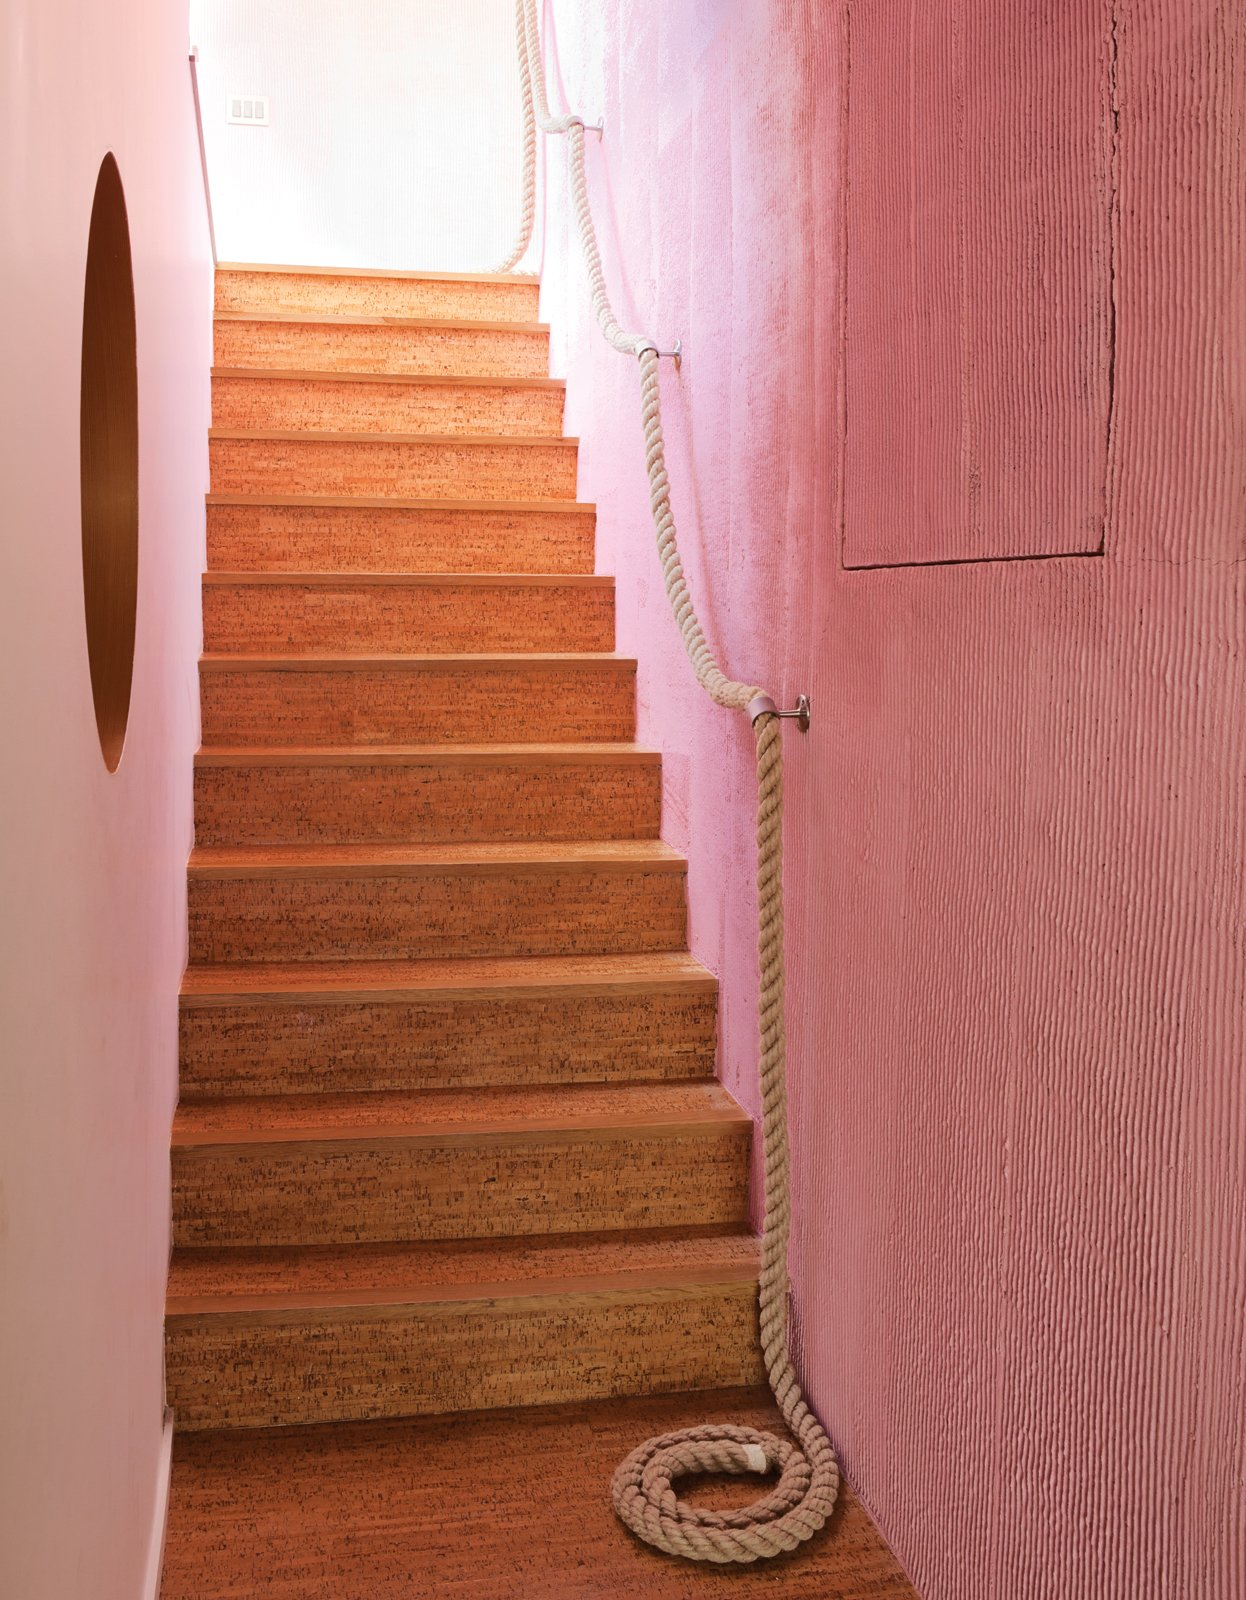 The cork stairs with a rope railing lead down to the kids' level. Tagged: Staircase and Wood Tread.  Idea not Ikea by Numchok Kamwan from A Fresh Dose of Color Livens Up This Midcentury Los Angeles Home